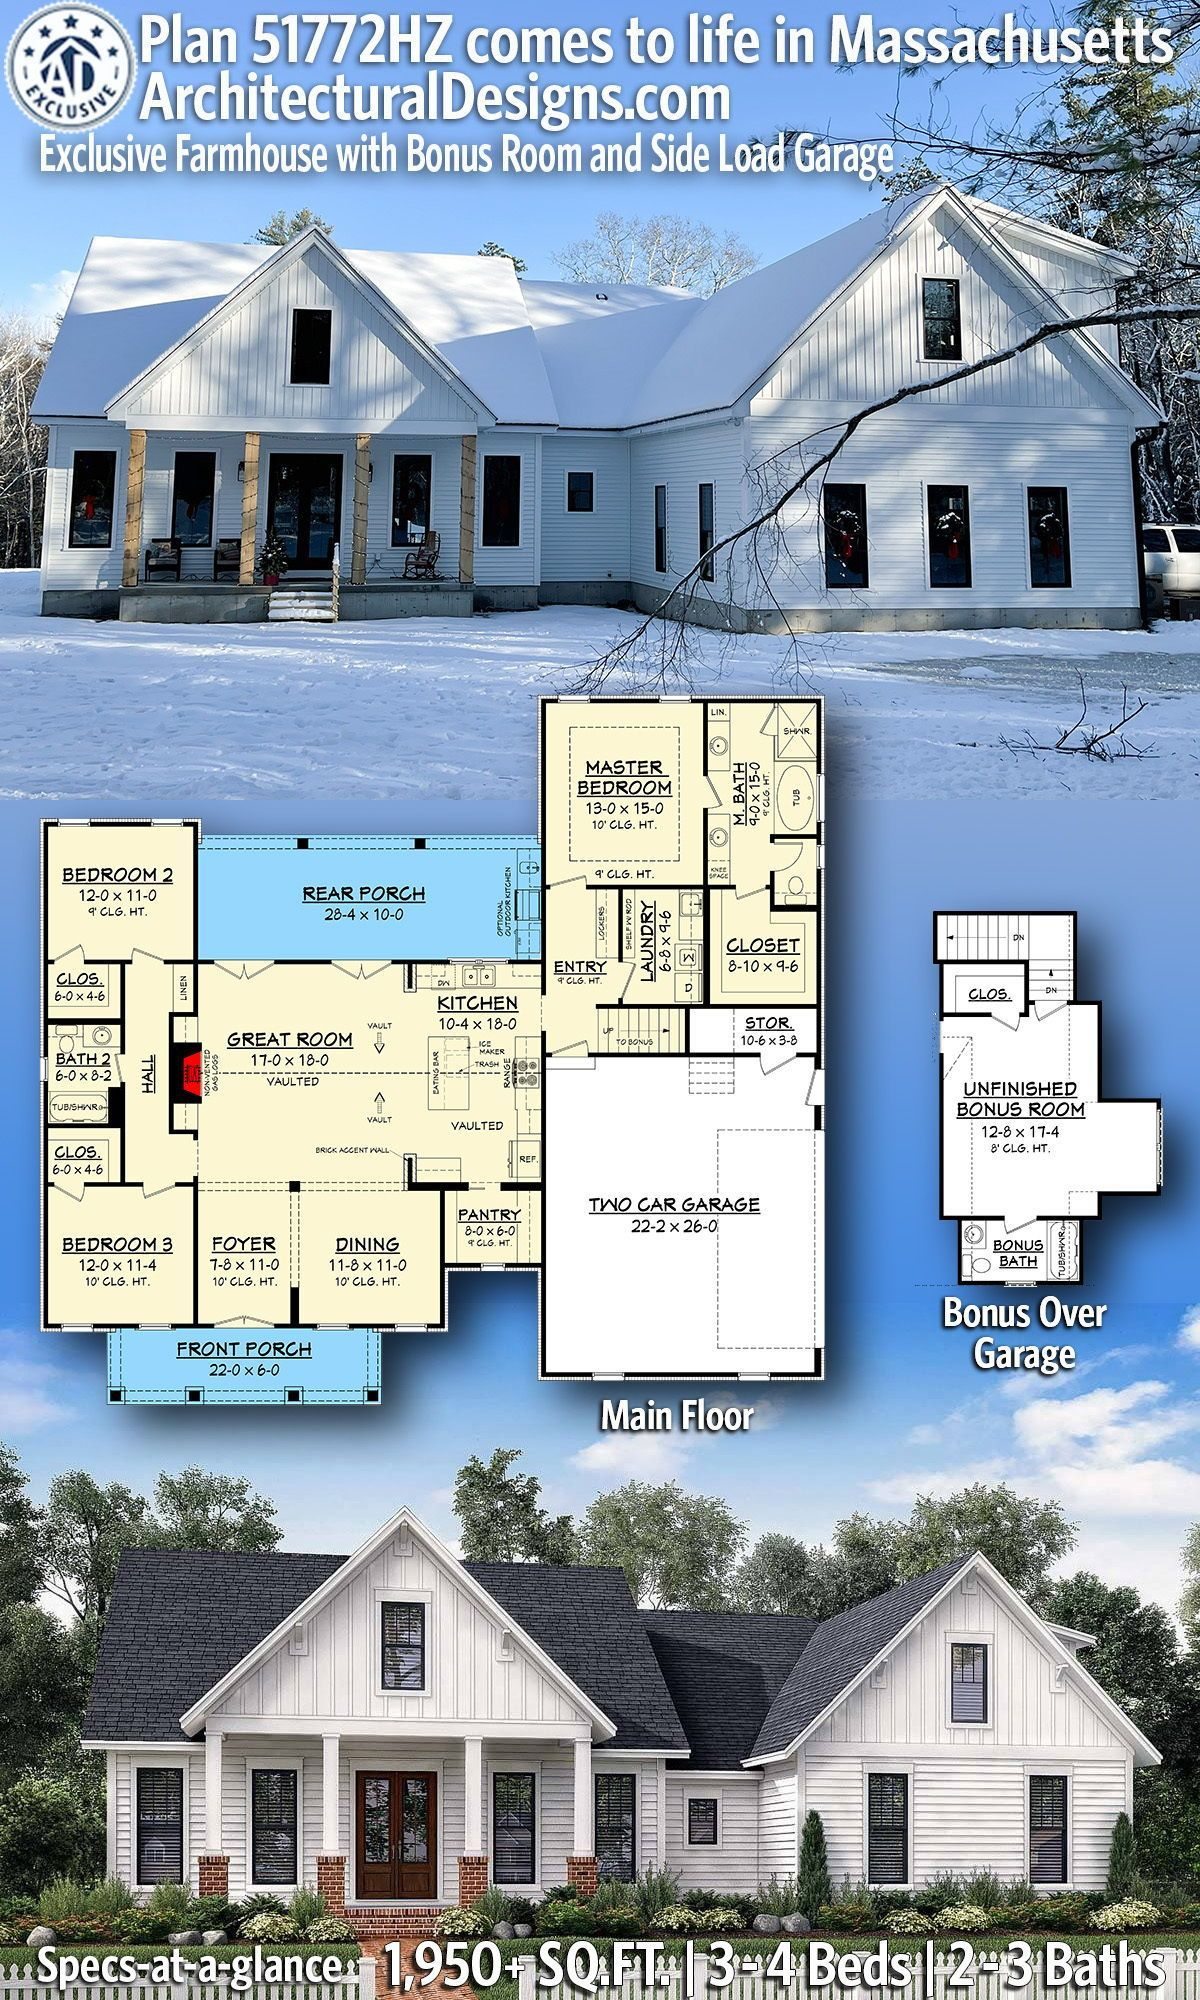 900 House Plans With Stories Ideas In 2021 House Plans House How To Plan